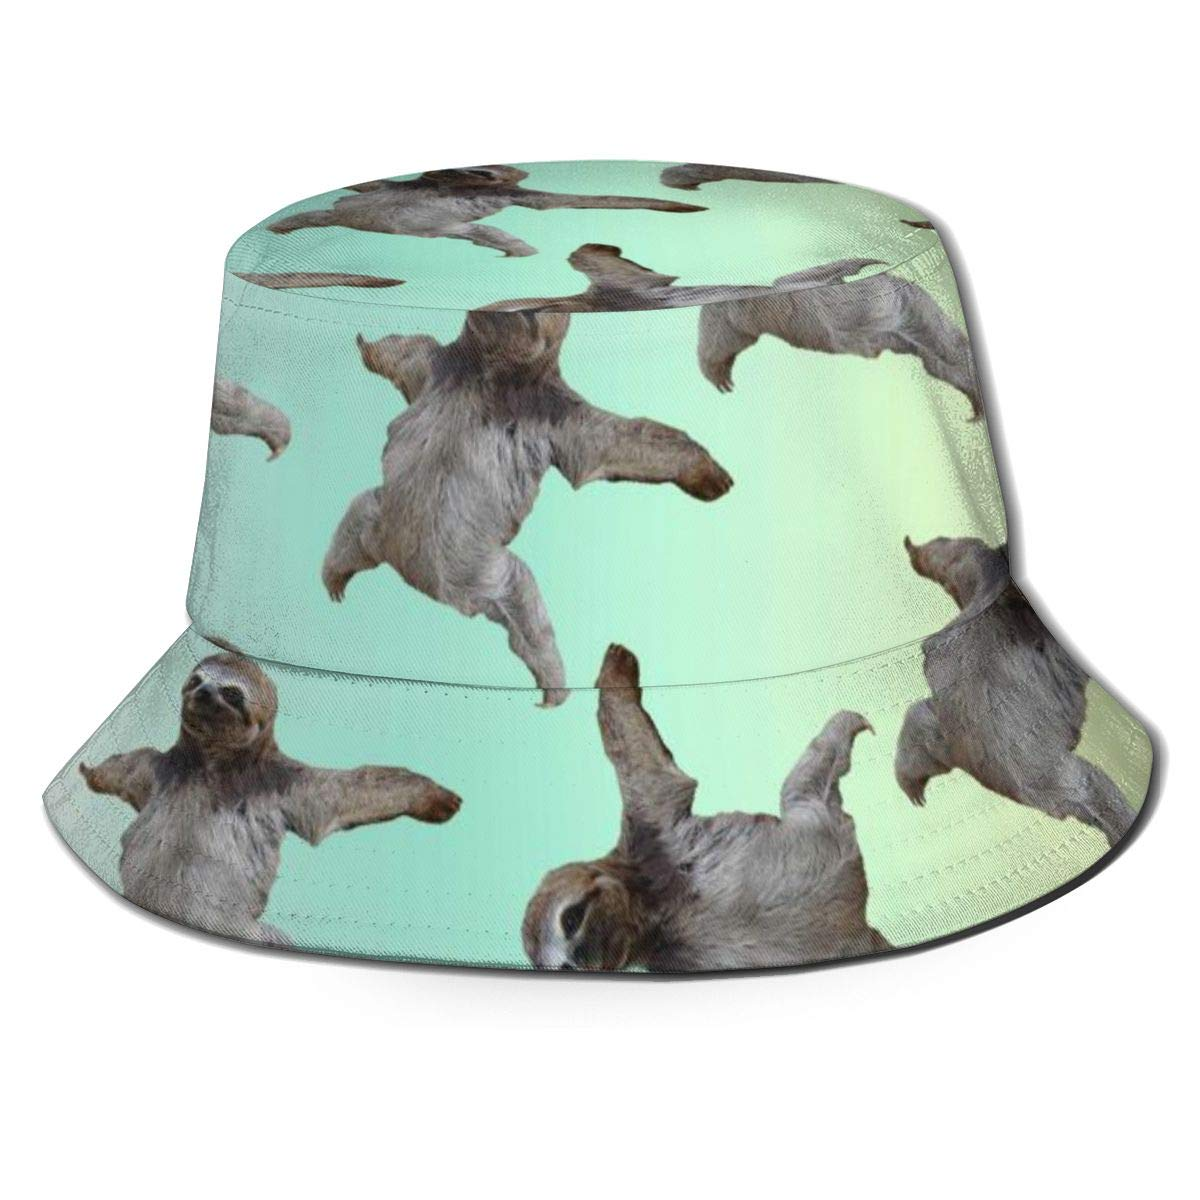 Stretch Mesh Back Trucker Hat for Unisex Ry71@Cap Boys and Girls 100/% Polyester Funny Fly Sloth Mesh Hat